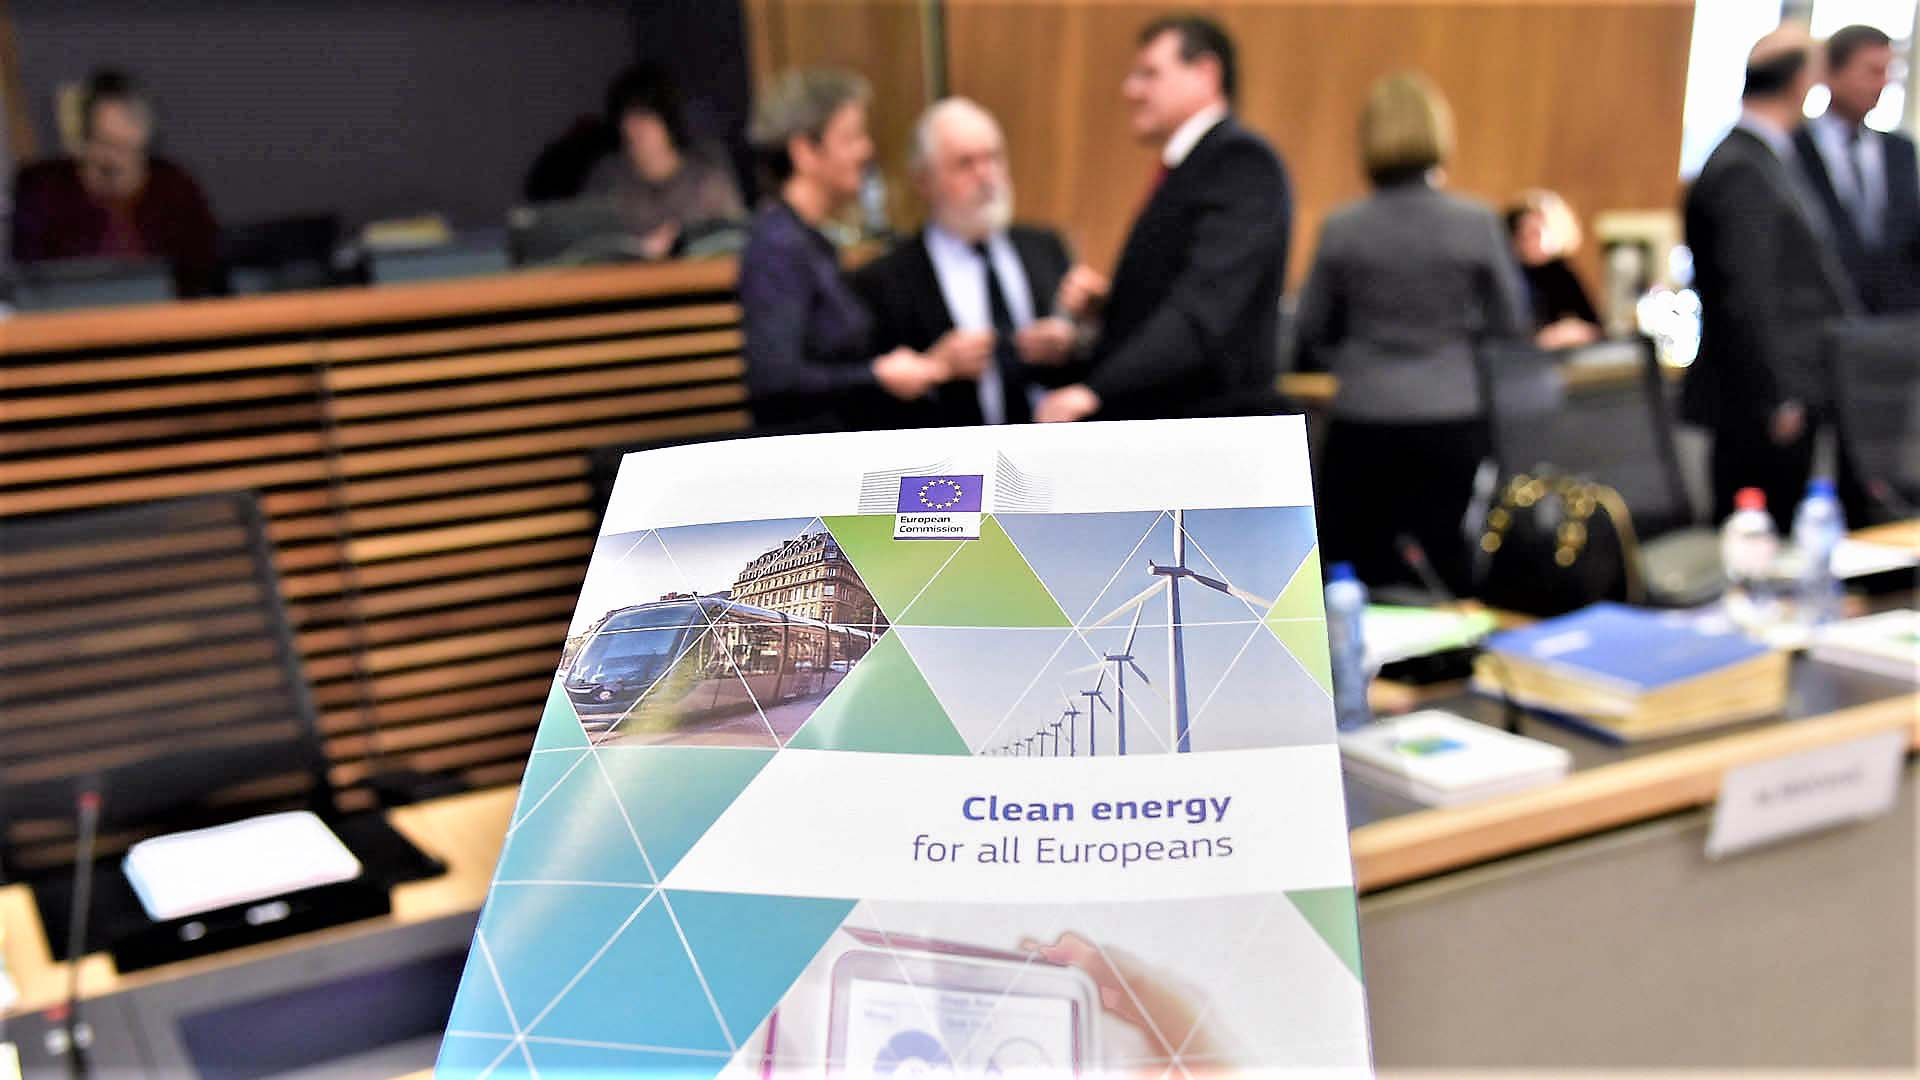 Energy Storage in the Clean Energy for All Europeans Package